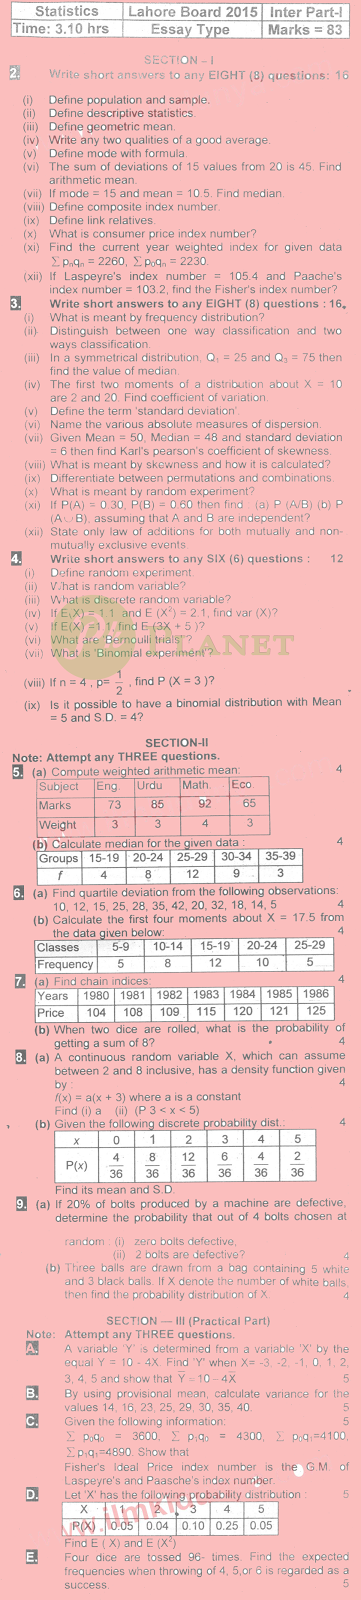 Past Papers of Statistics Inter part 1 Lahore Board 2015